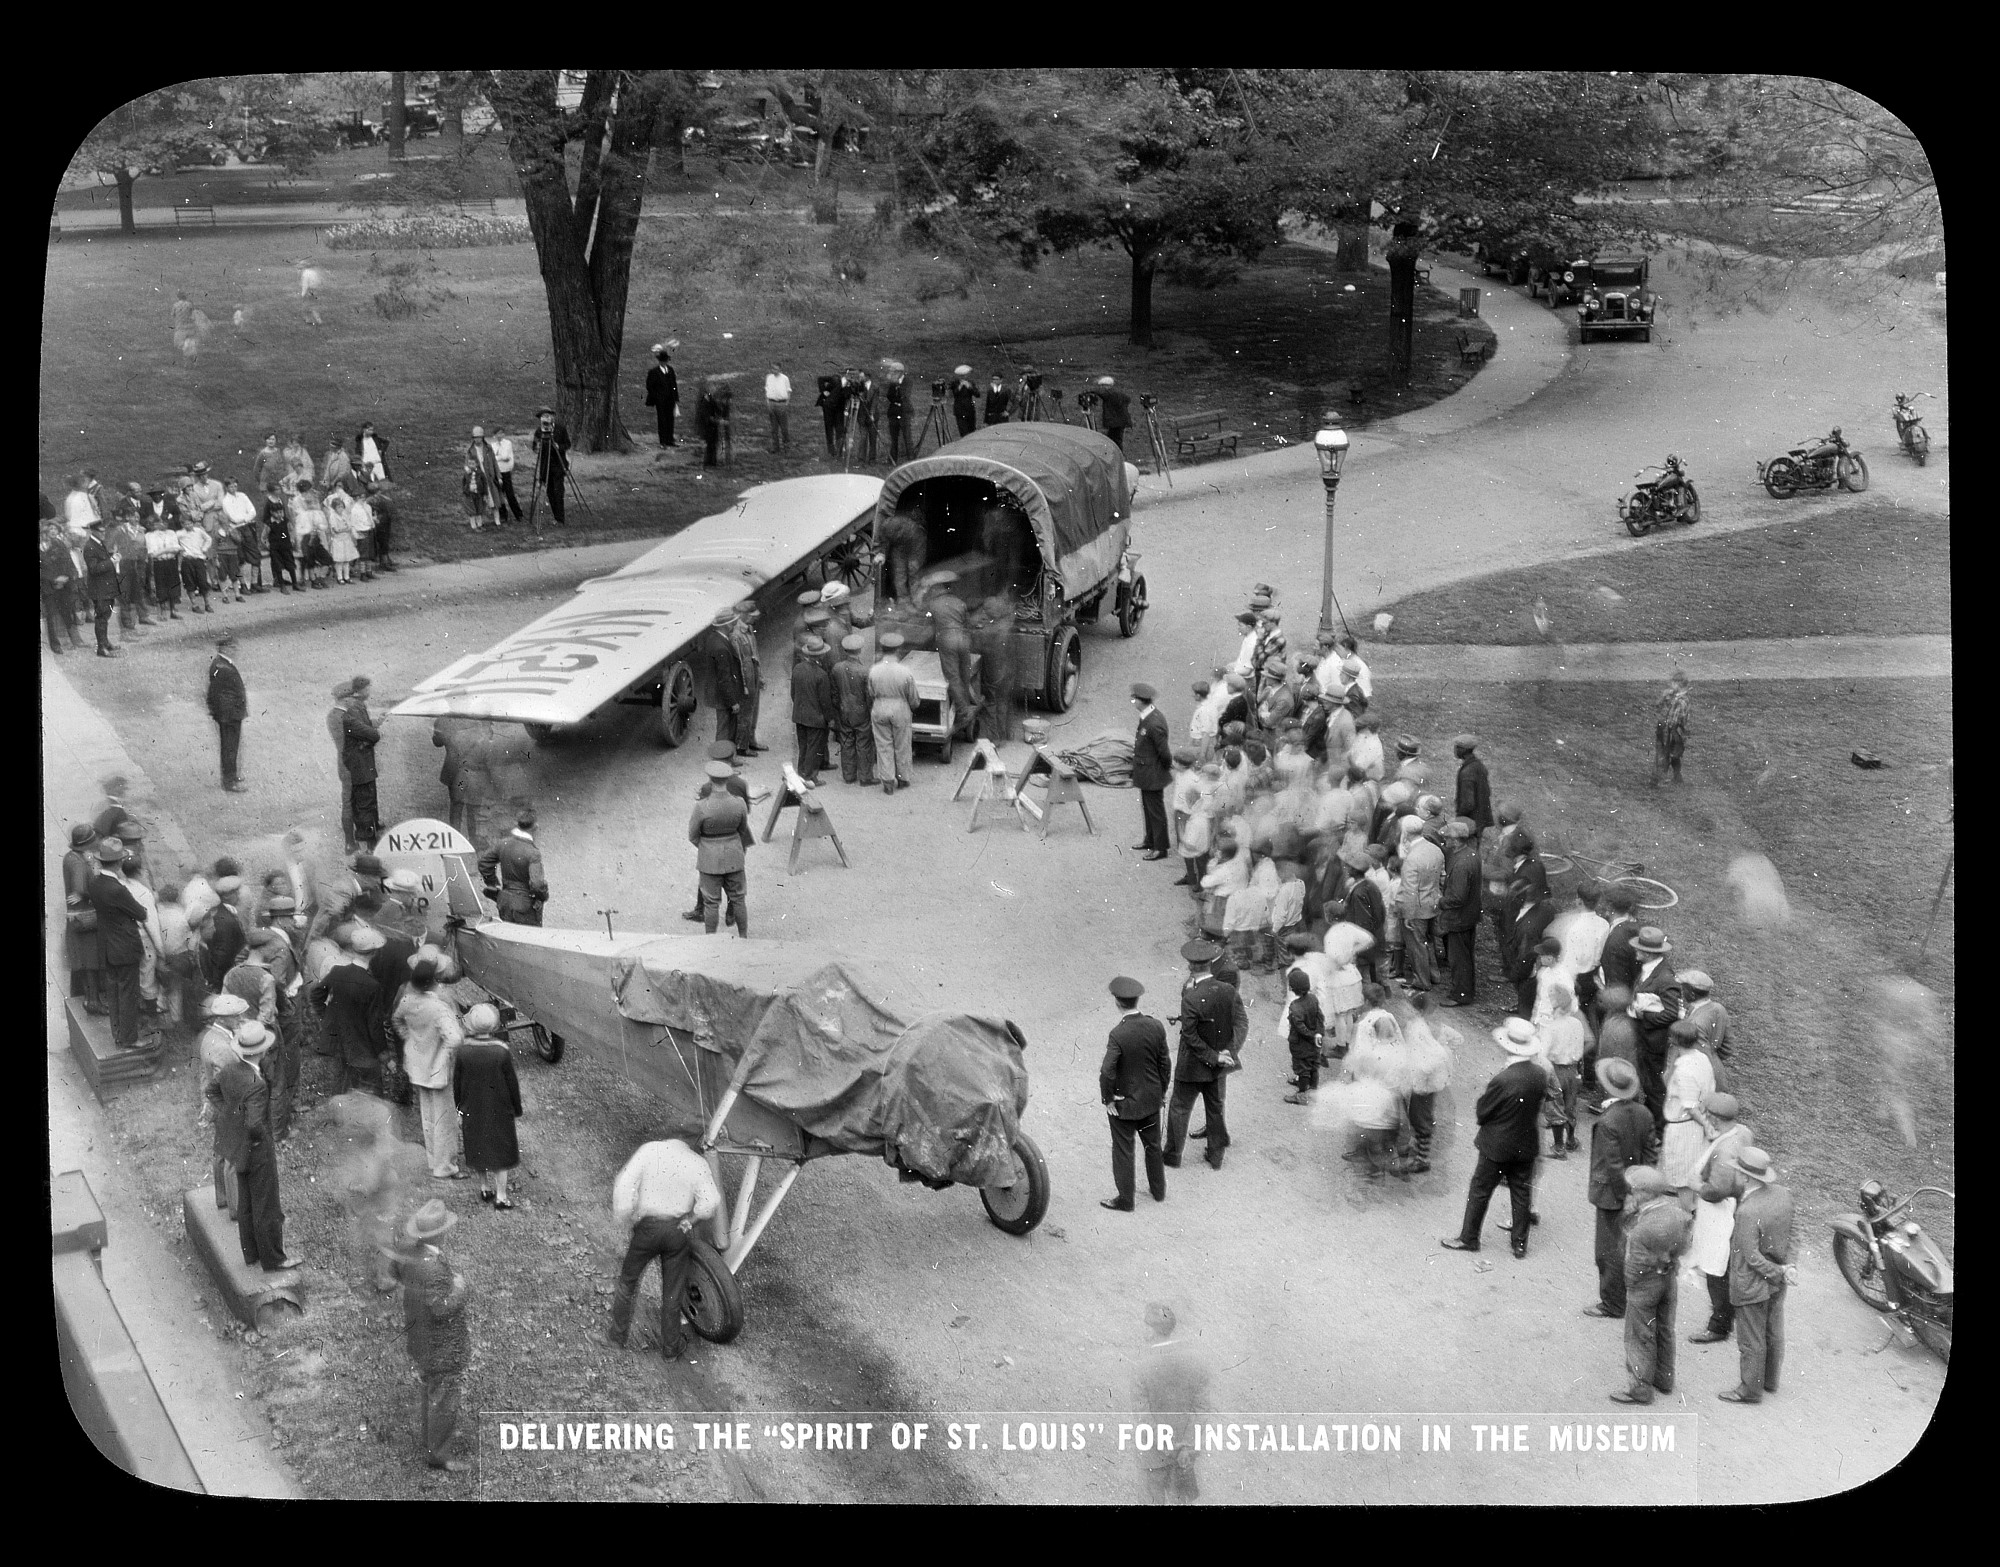 """Delivering the """"Spirit of St. Louis"""" to the Smithsonian"""